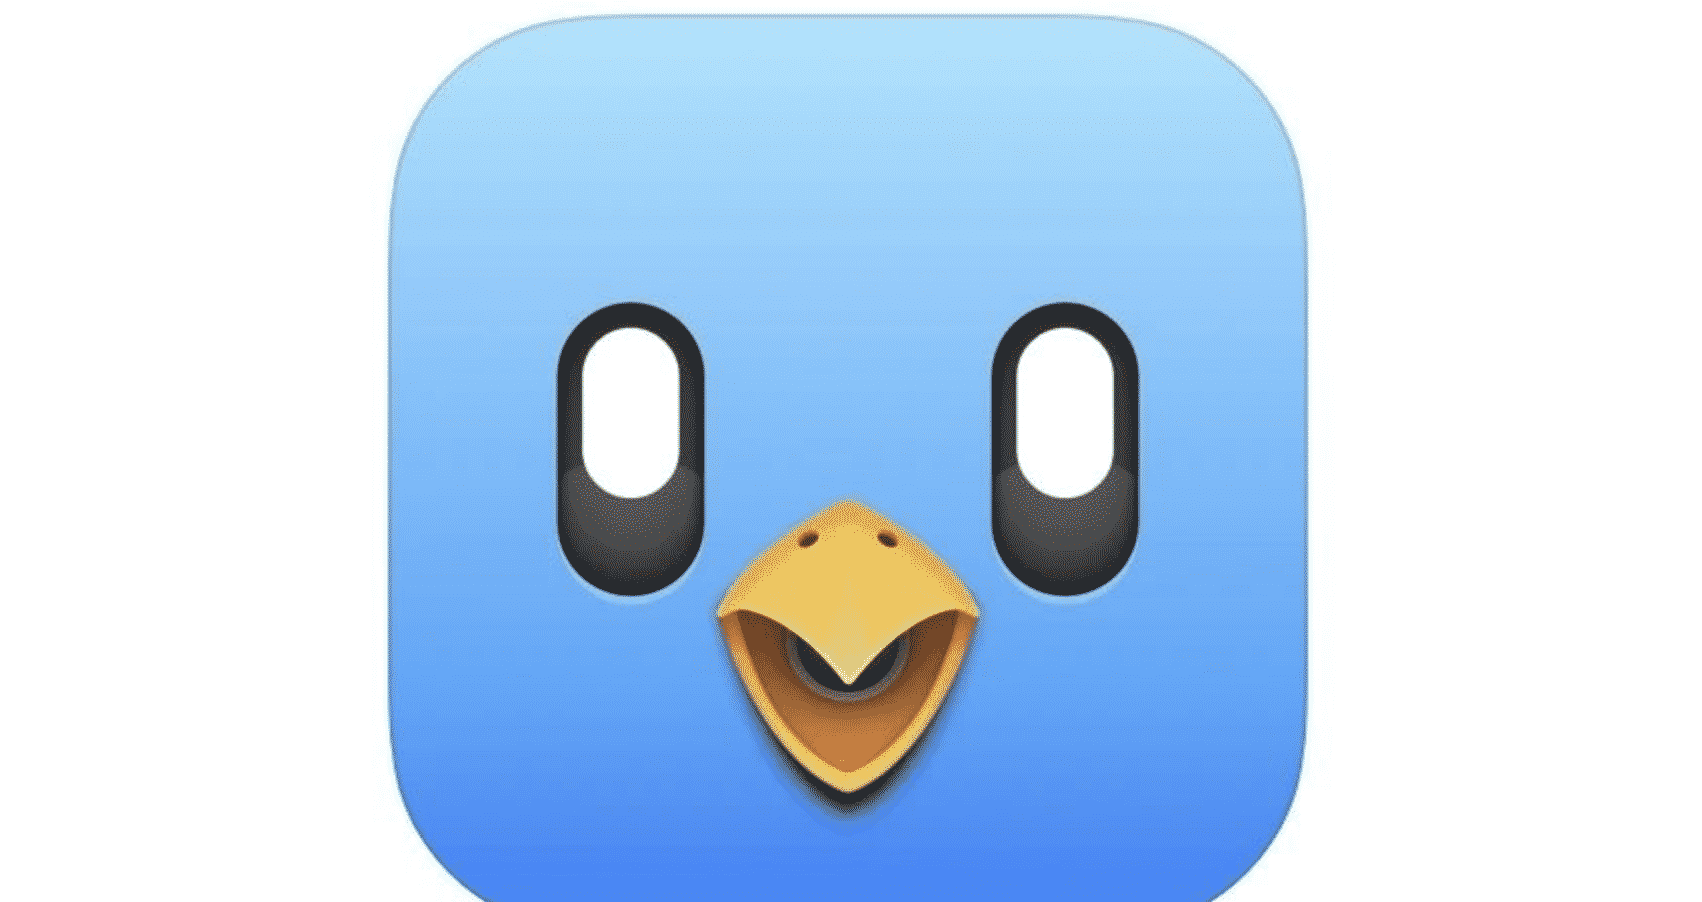 iOS usability customizations arrive on the new Tweetbot update